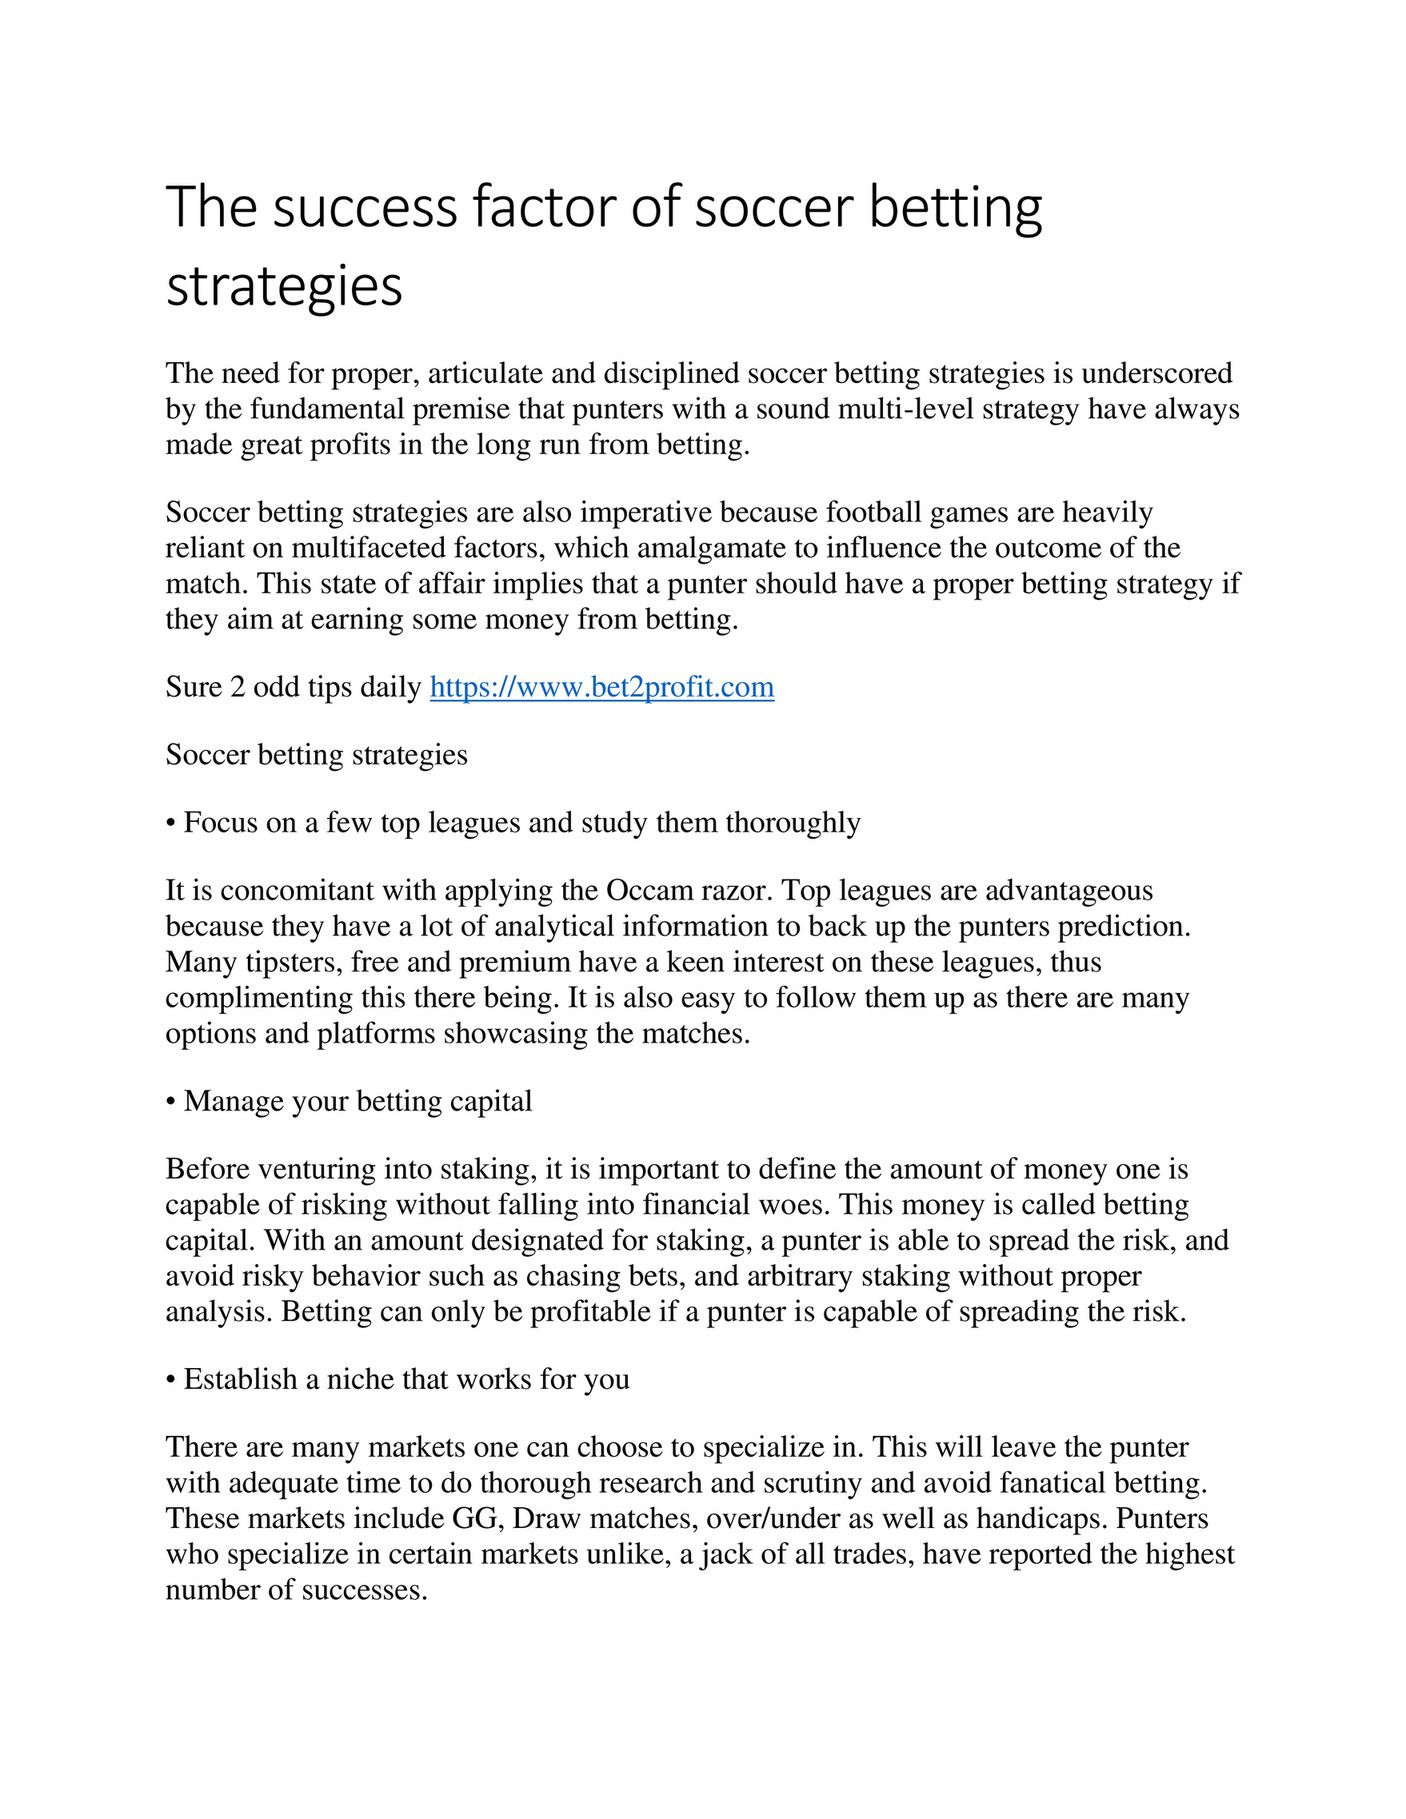 My publications - The success factor of soccer betting strategies